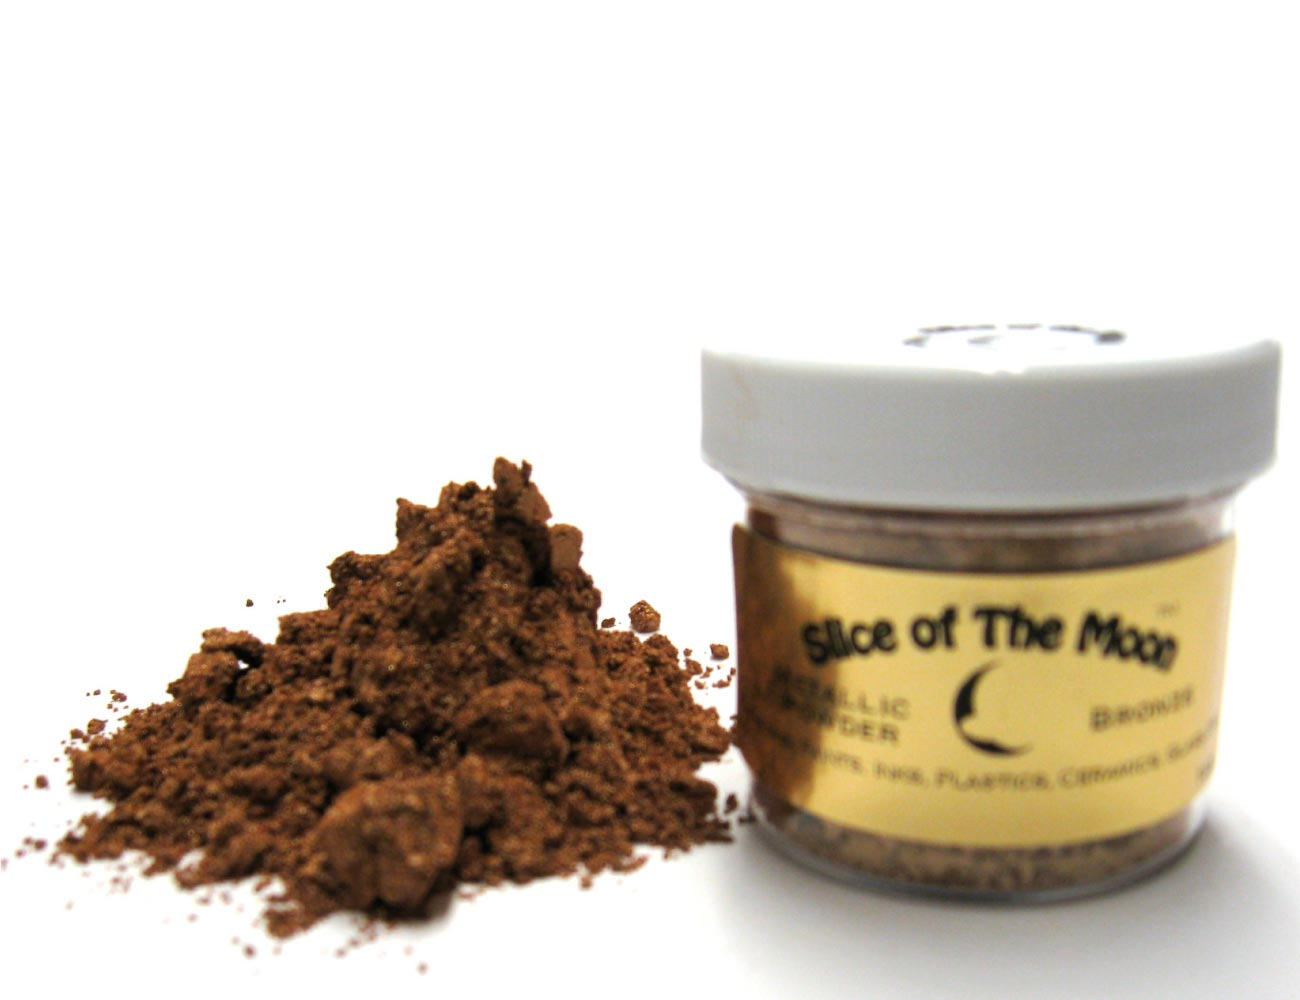 Bronze Mica Powder Cosmetic Grade Mica, Slice of